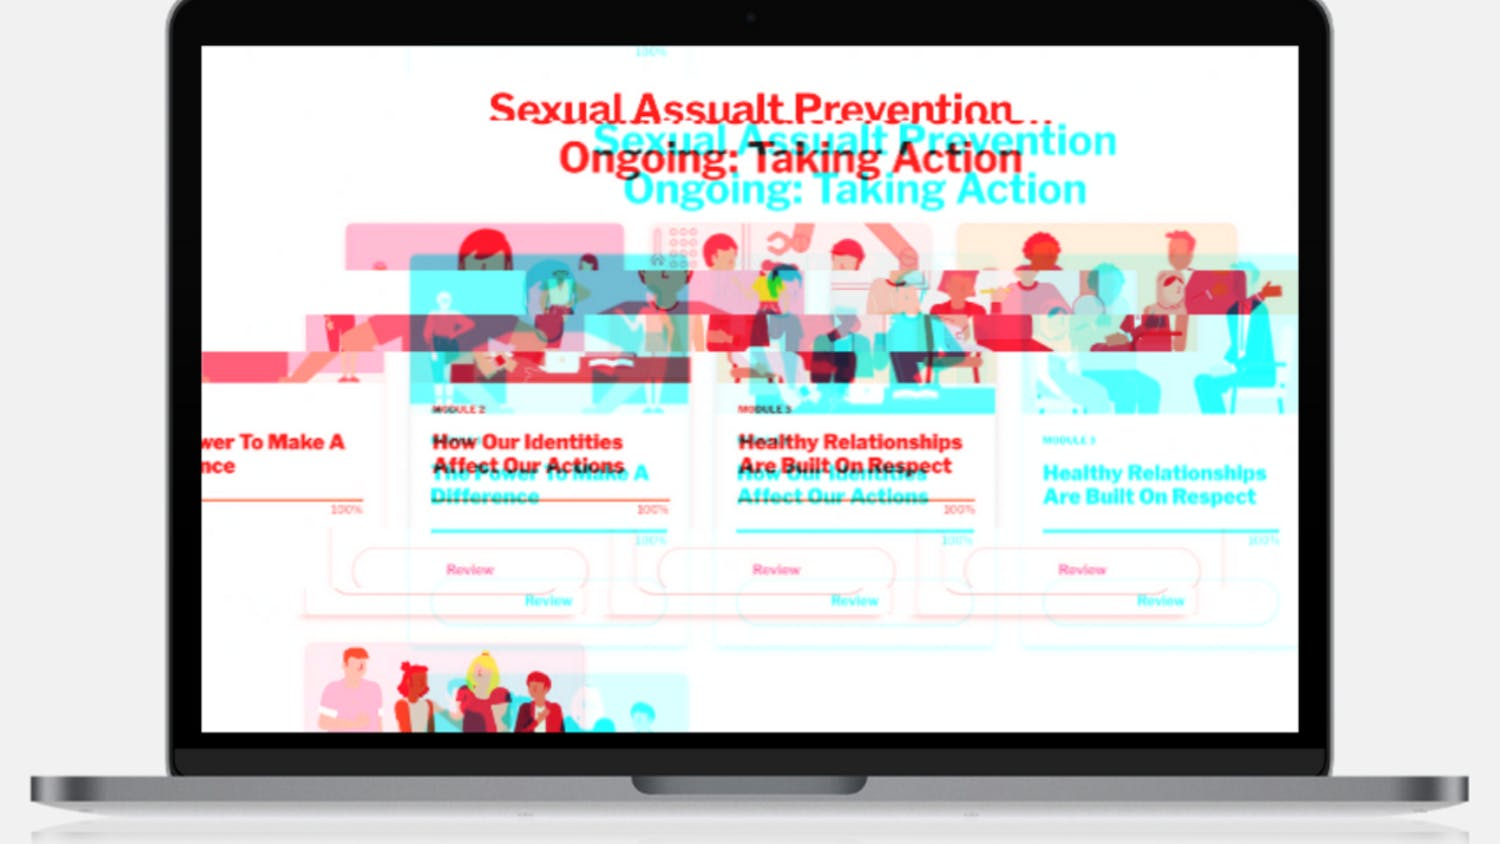 A screenshot of Western's sexual assault prevention training online module through the company EverFi. The training has been shown to be ineffective, and researchers say ineffective training can be harmful. // Photo illustration by Nate Sanford and Lauren Gallup